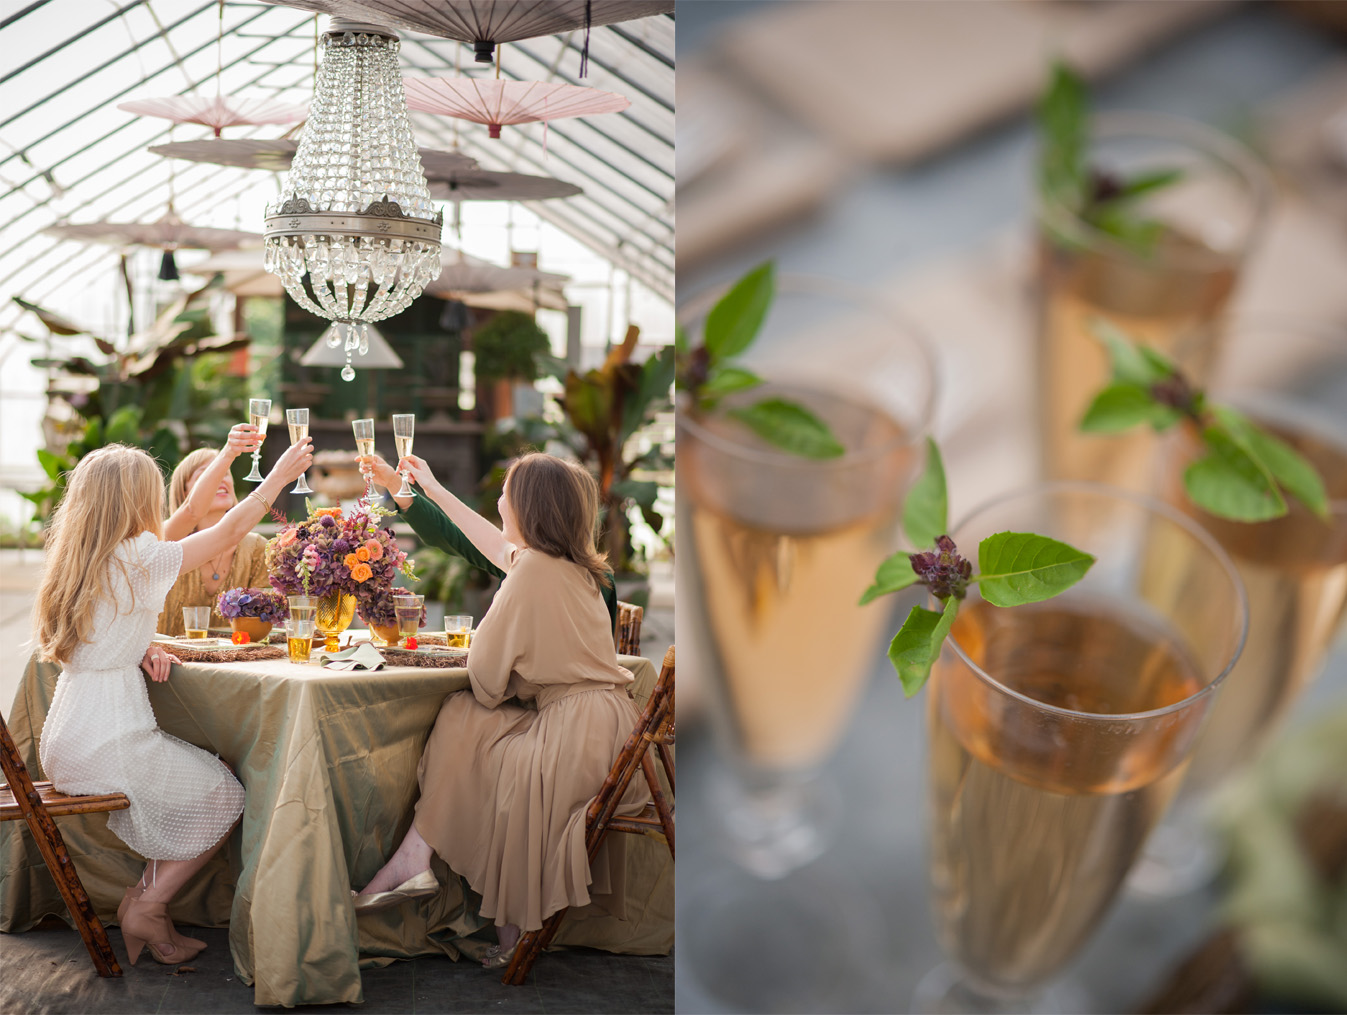 A Greenhouse Garden Bridal Shower | Ultimate Bridesmaid | Brea McDonald Photography